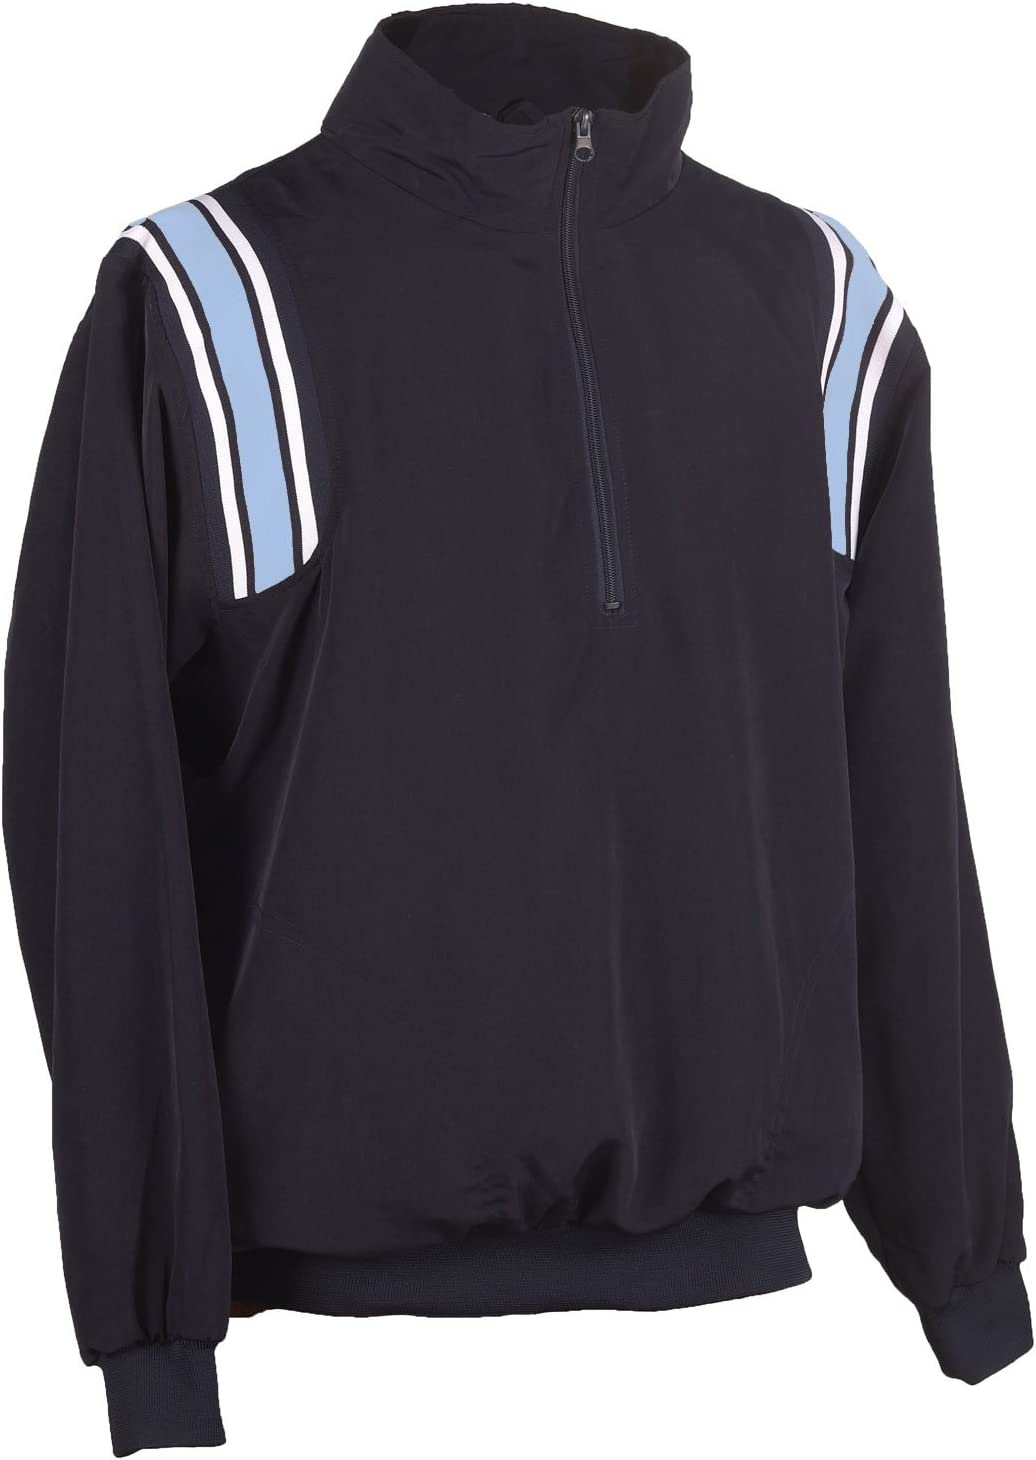 Adams USA Smitty Umpire 1 2 Zip Long Complete Free Shipping Super-cheap Pullover Sleeve Jacket